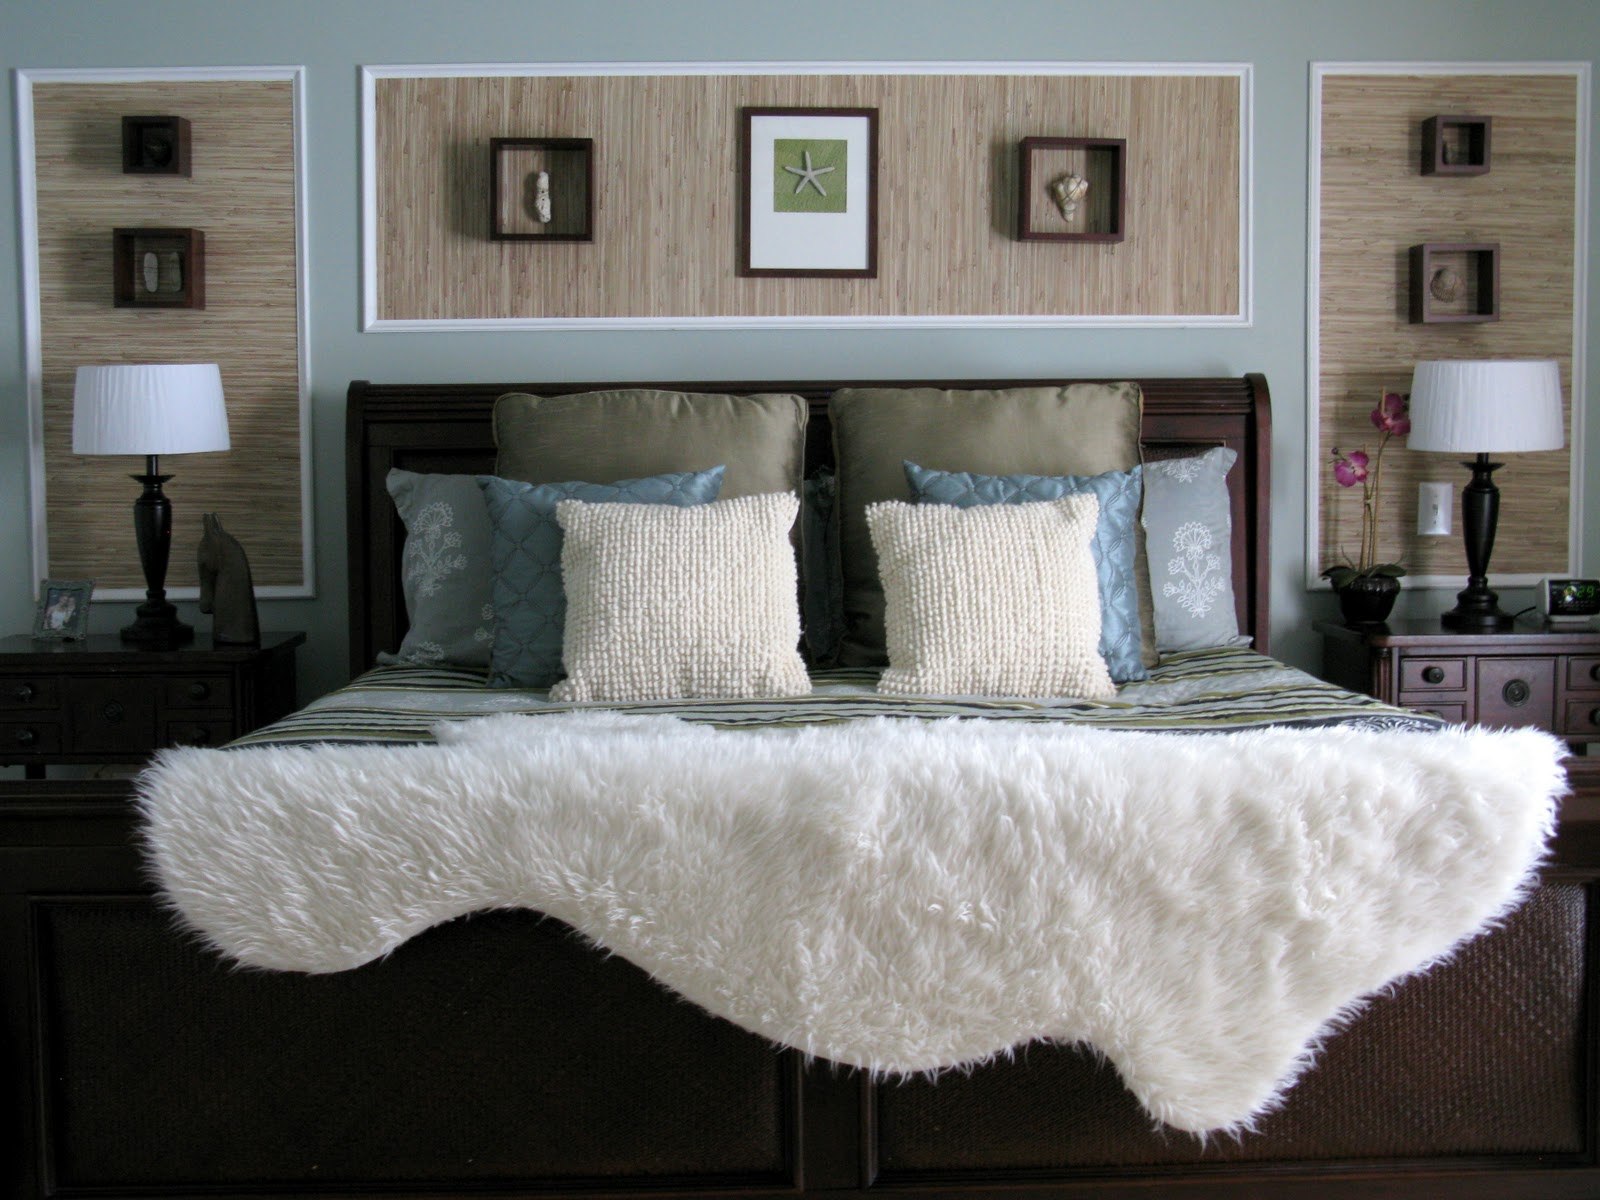 Loveyourroom voted one of the top bedrooms by houzz for Master bedroom wall decor